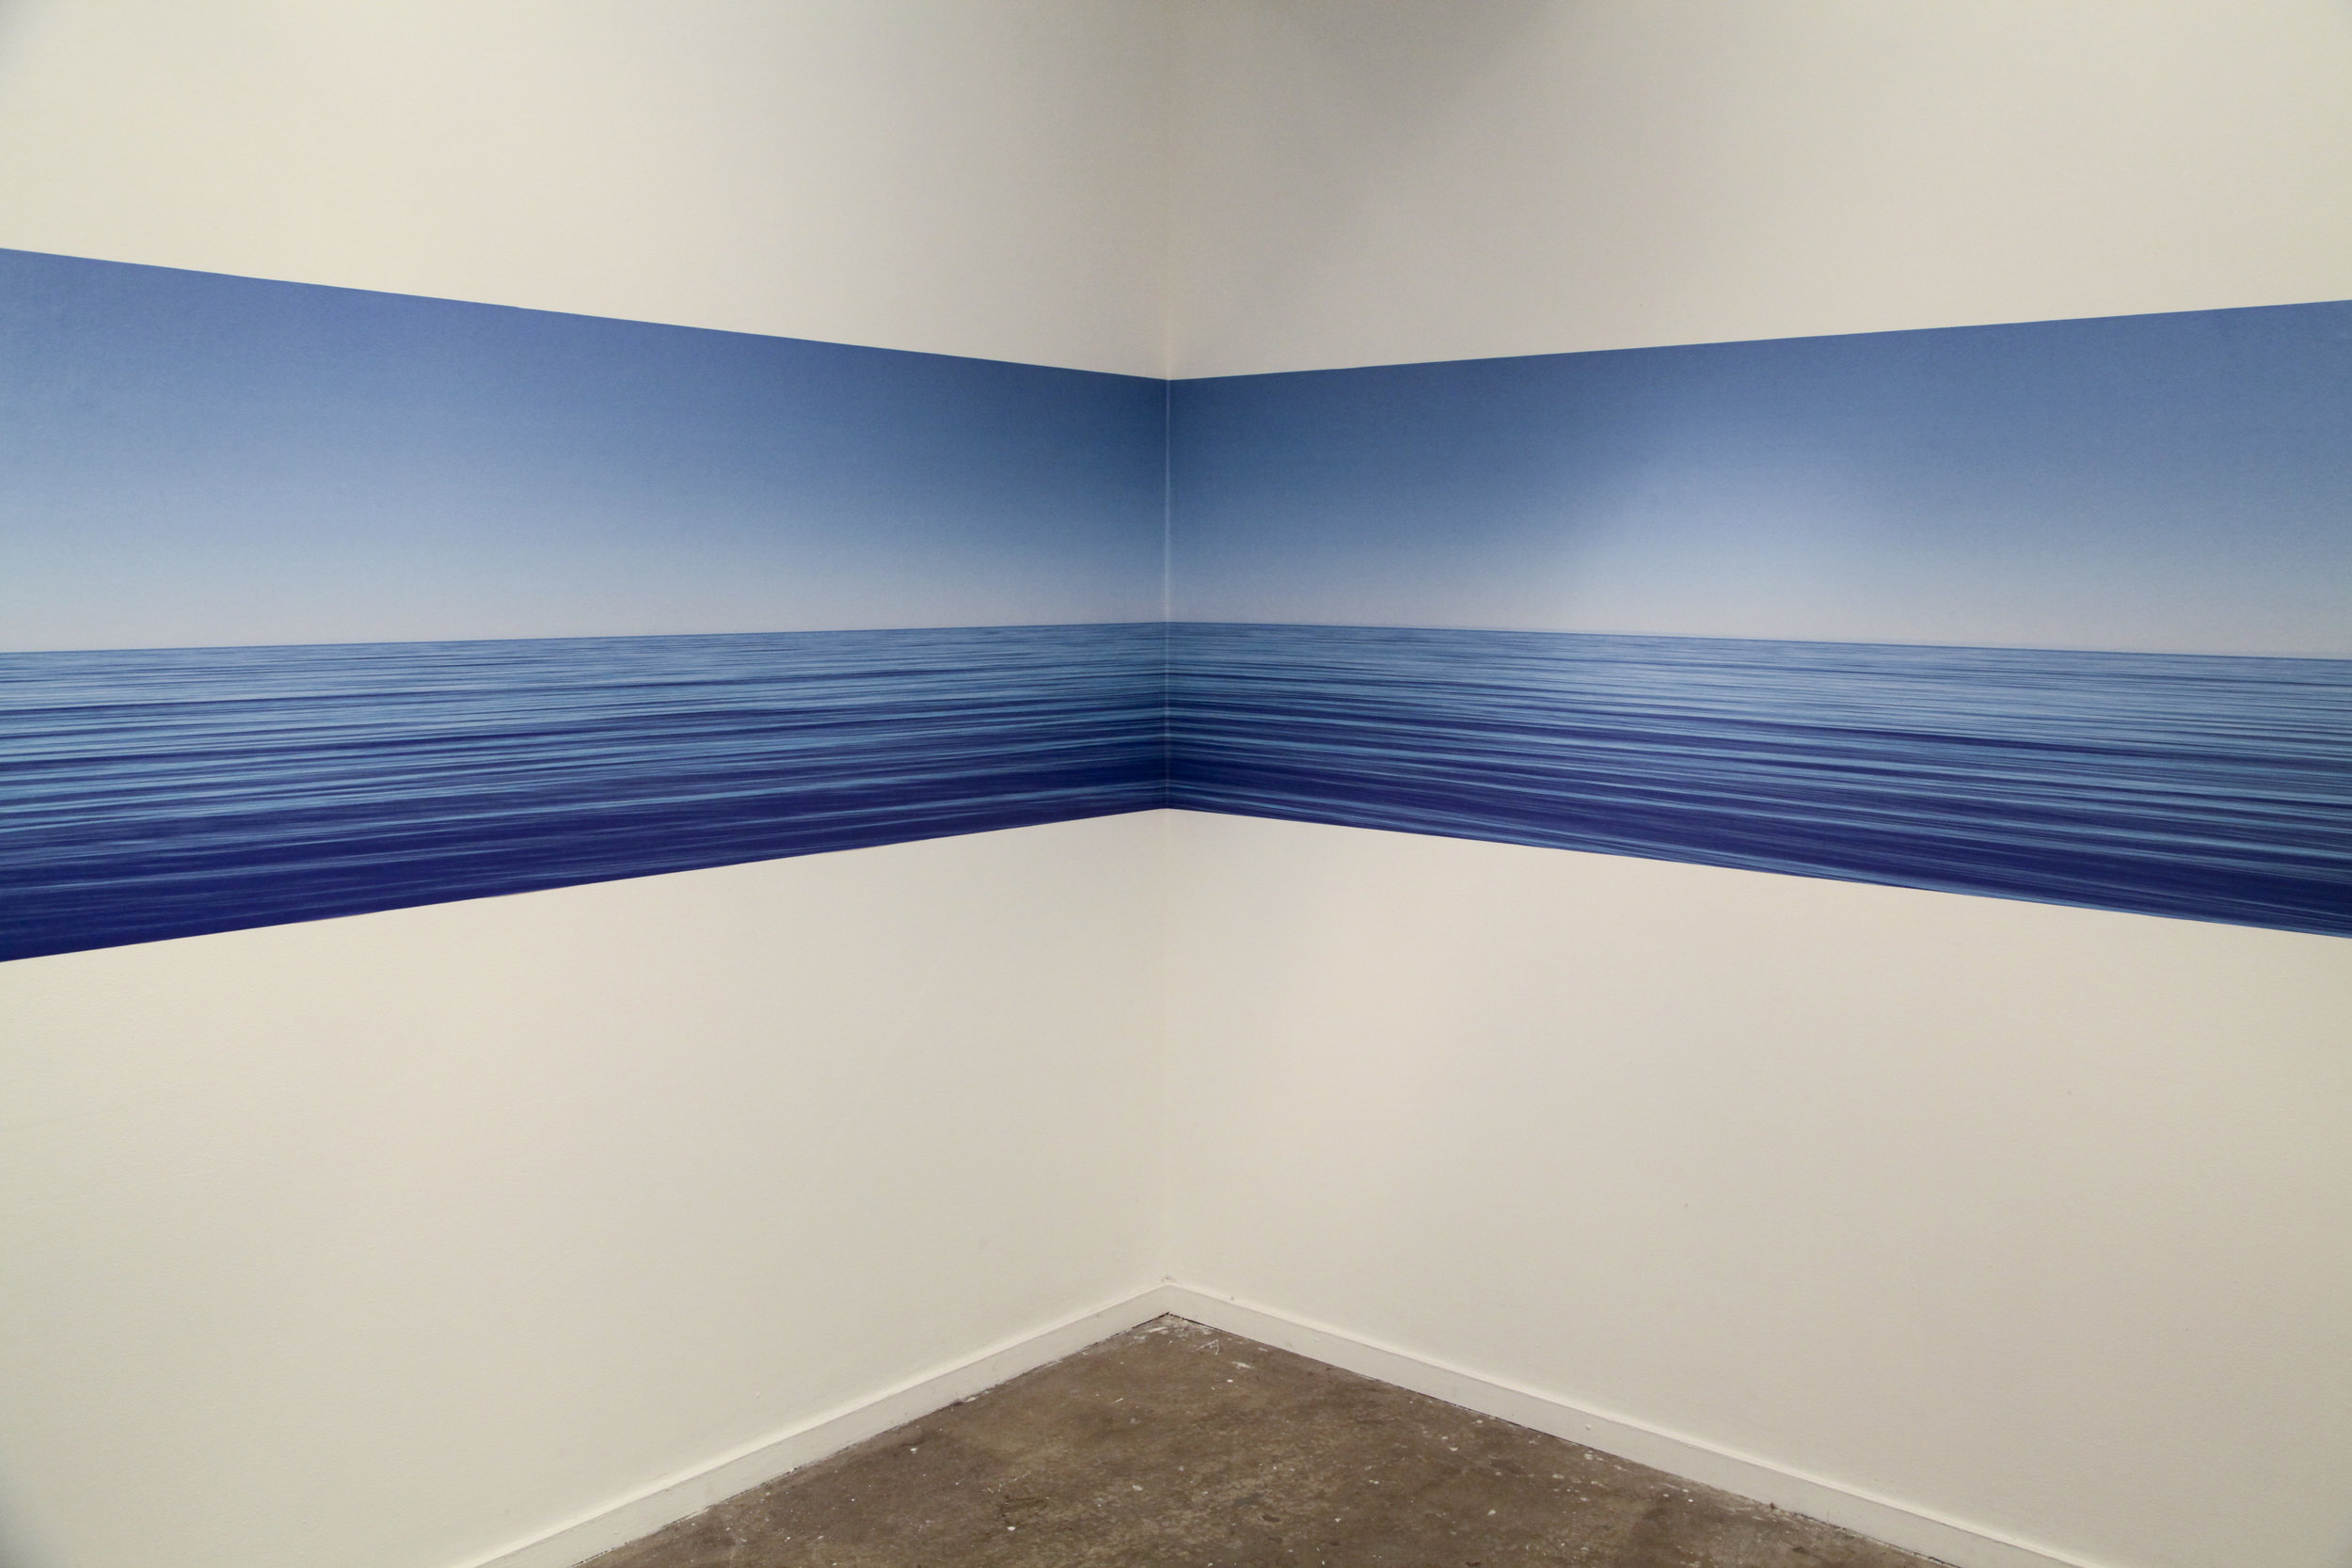 Horizon , 2013, printed adhesive vinyl, installation view, MOP Projects, Sydney. Photography: Michael Randall. Copyright JD Reforma